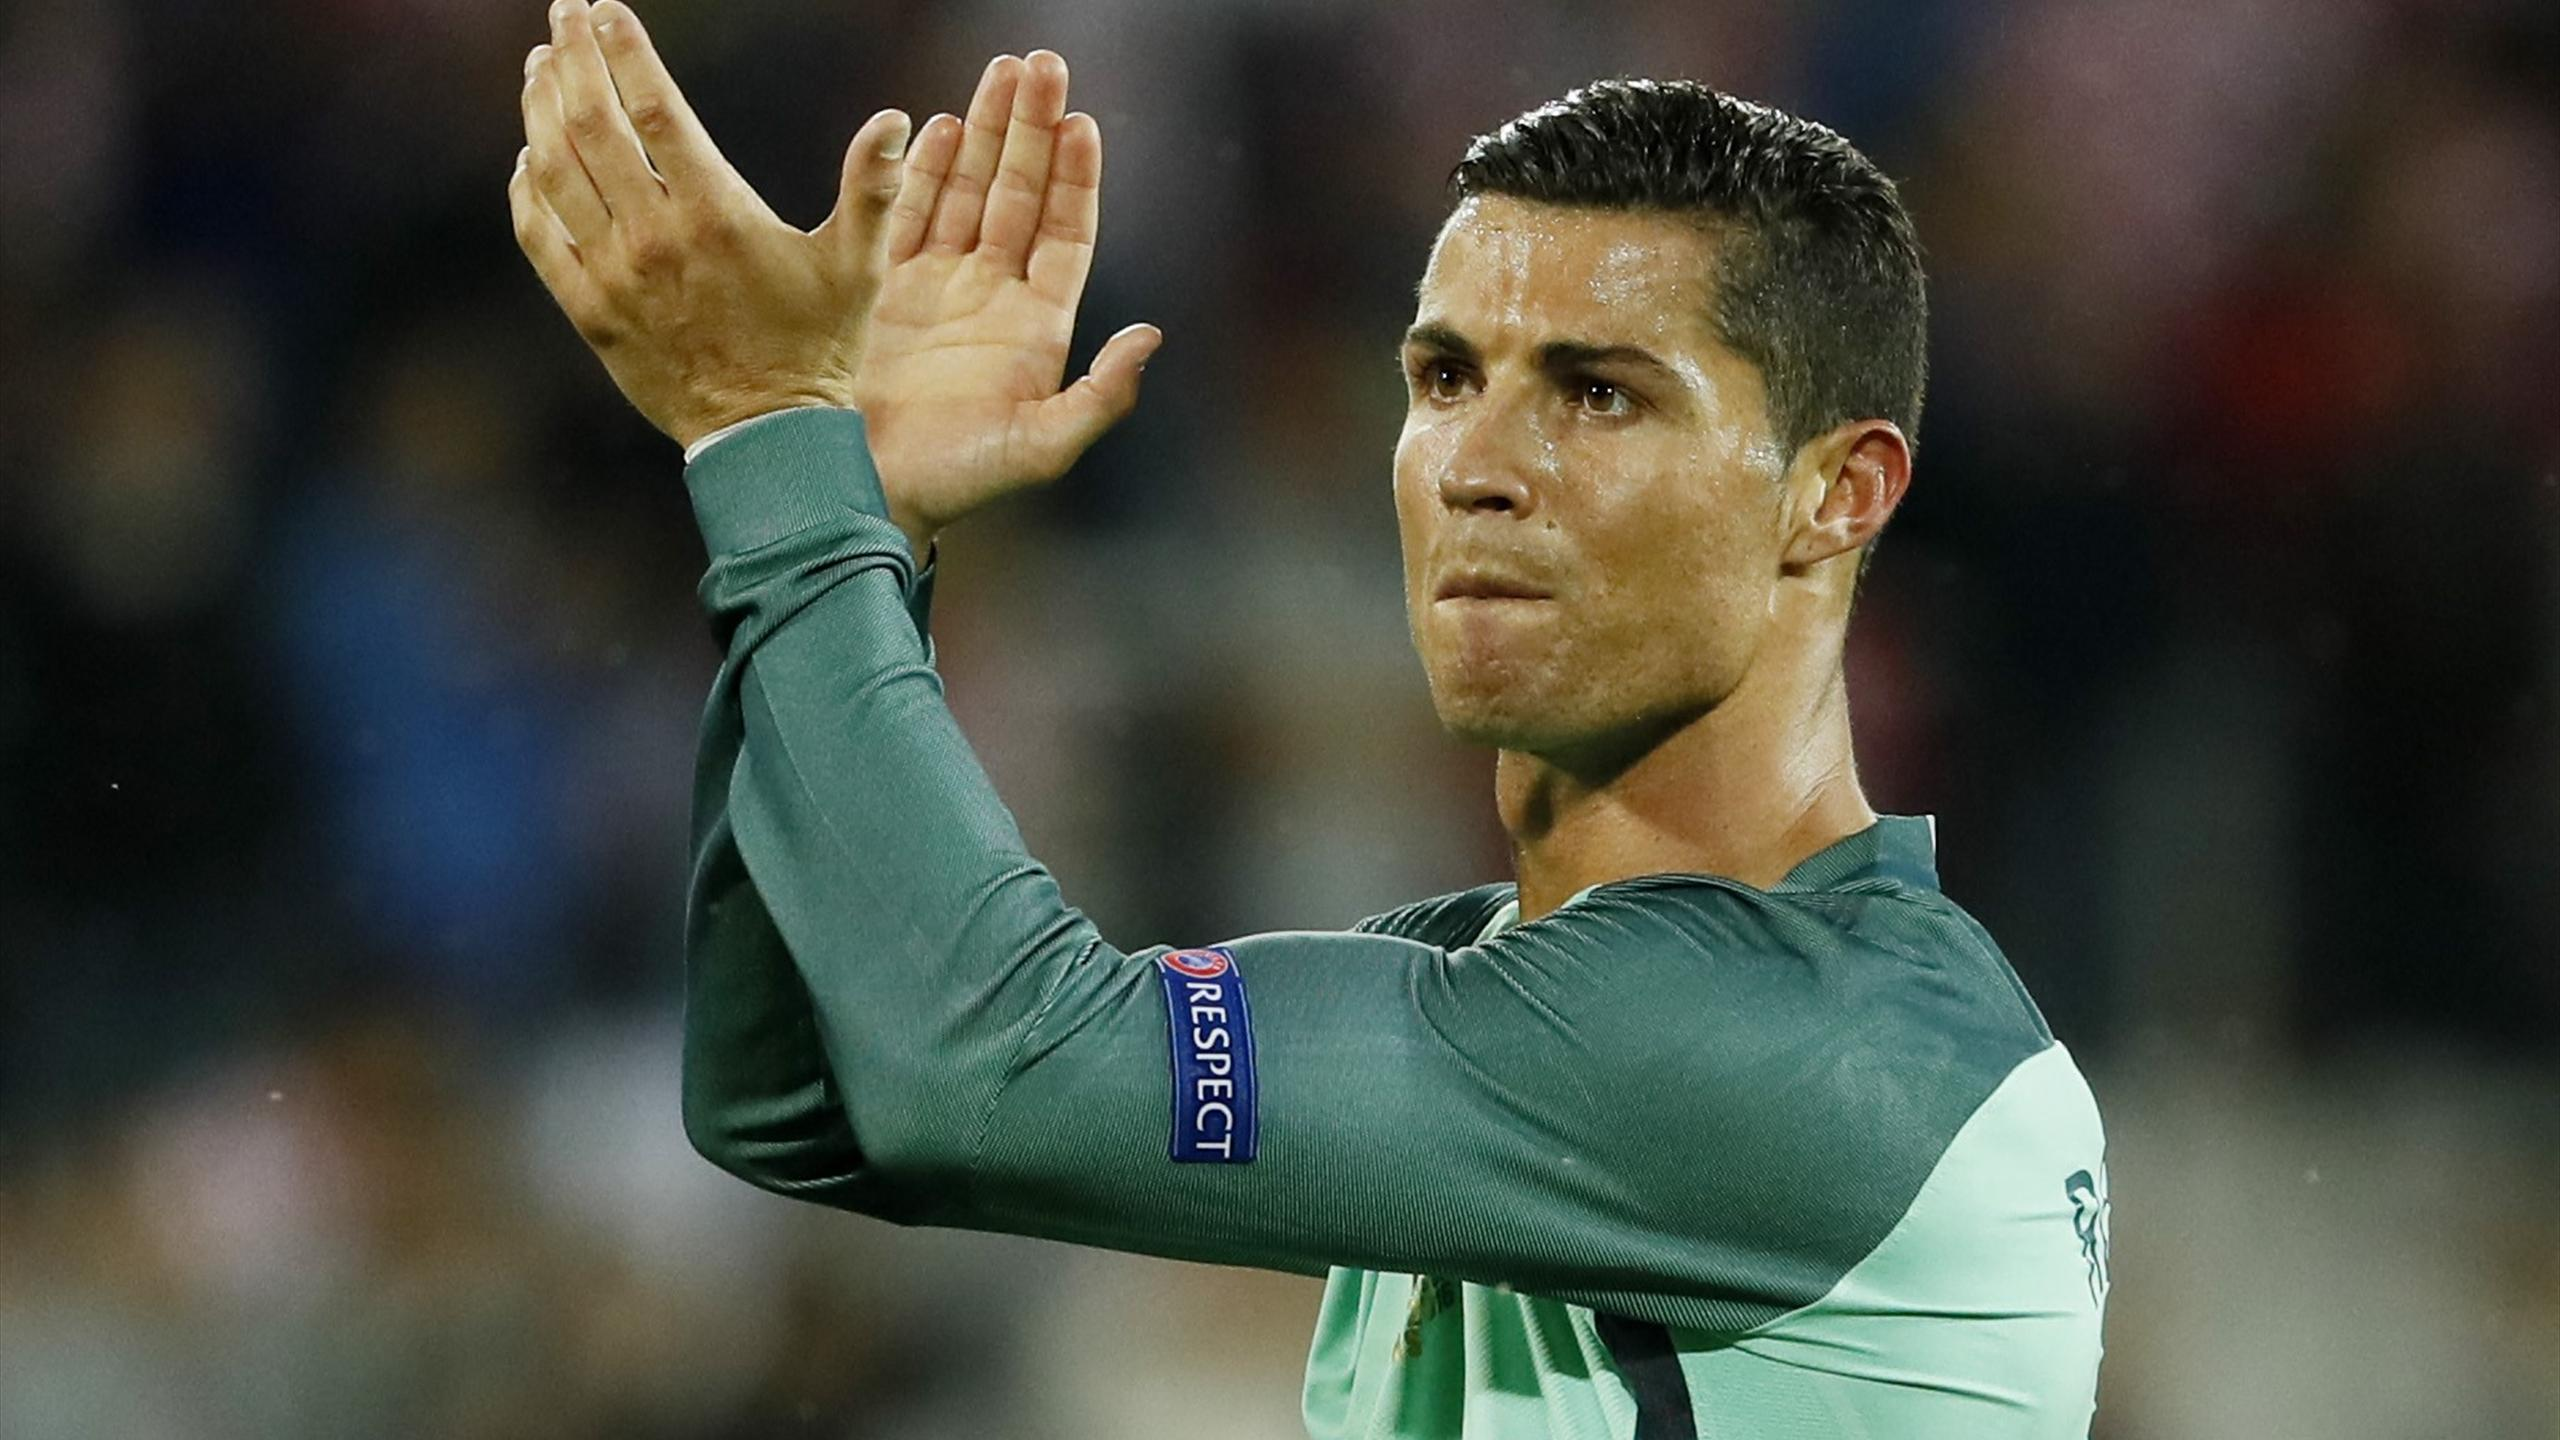 Portugal's Cristiano Ronaldo applauds fans after the game against Croatia at Euro 2016